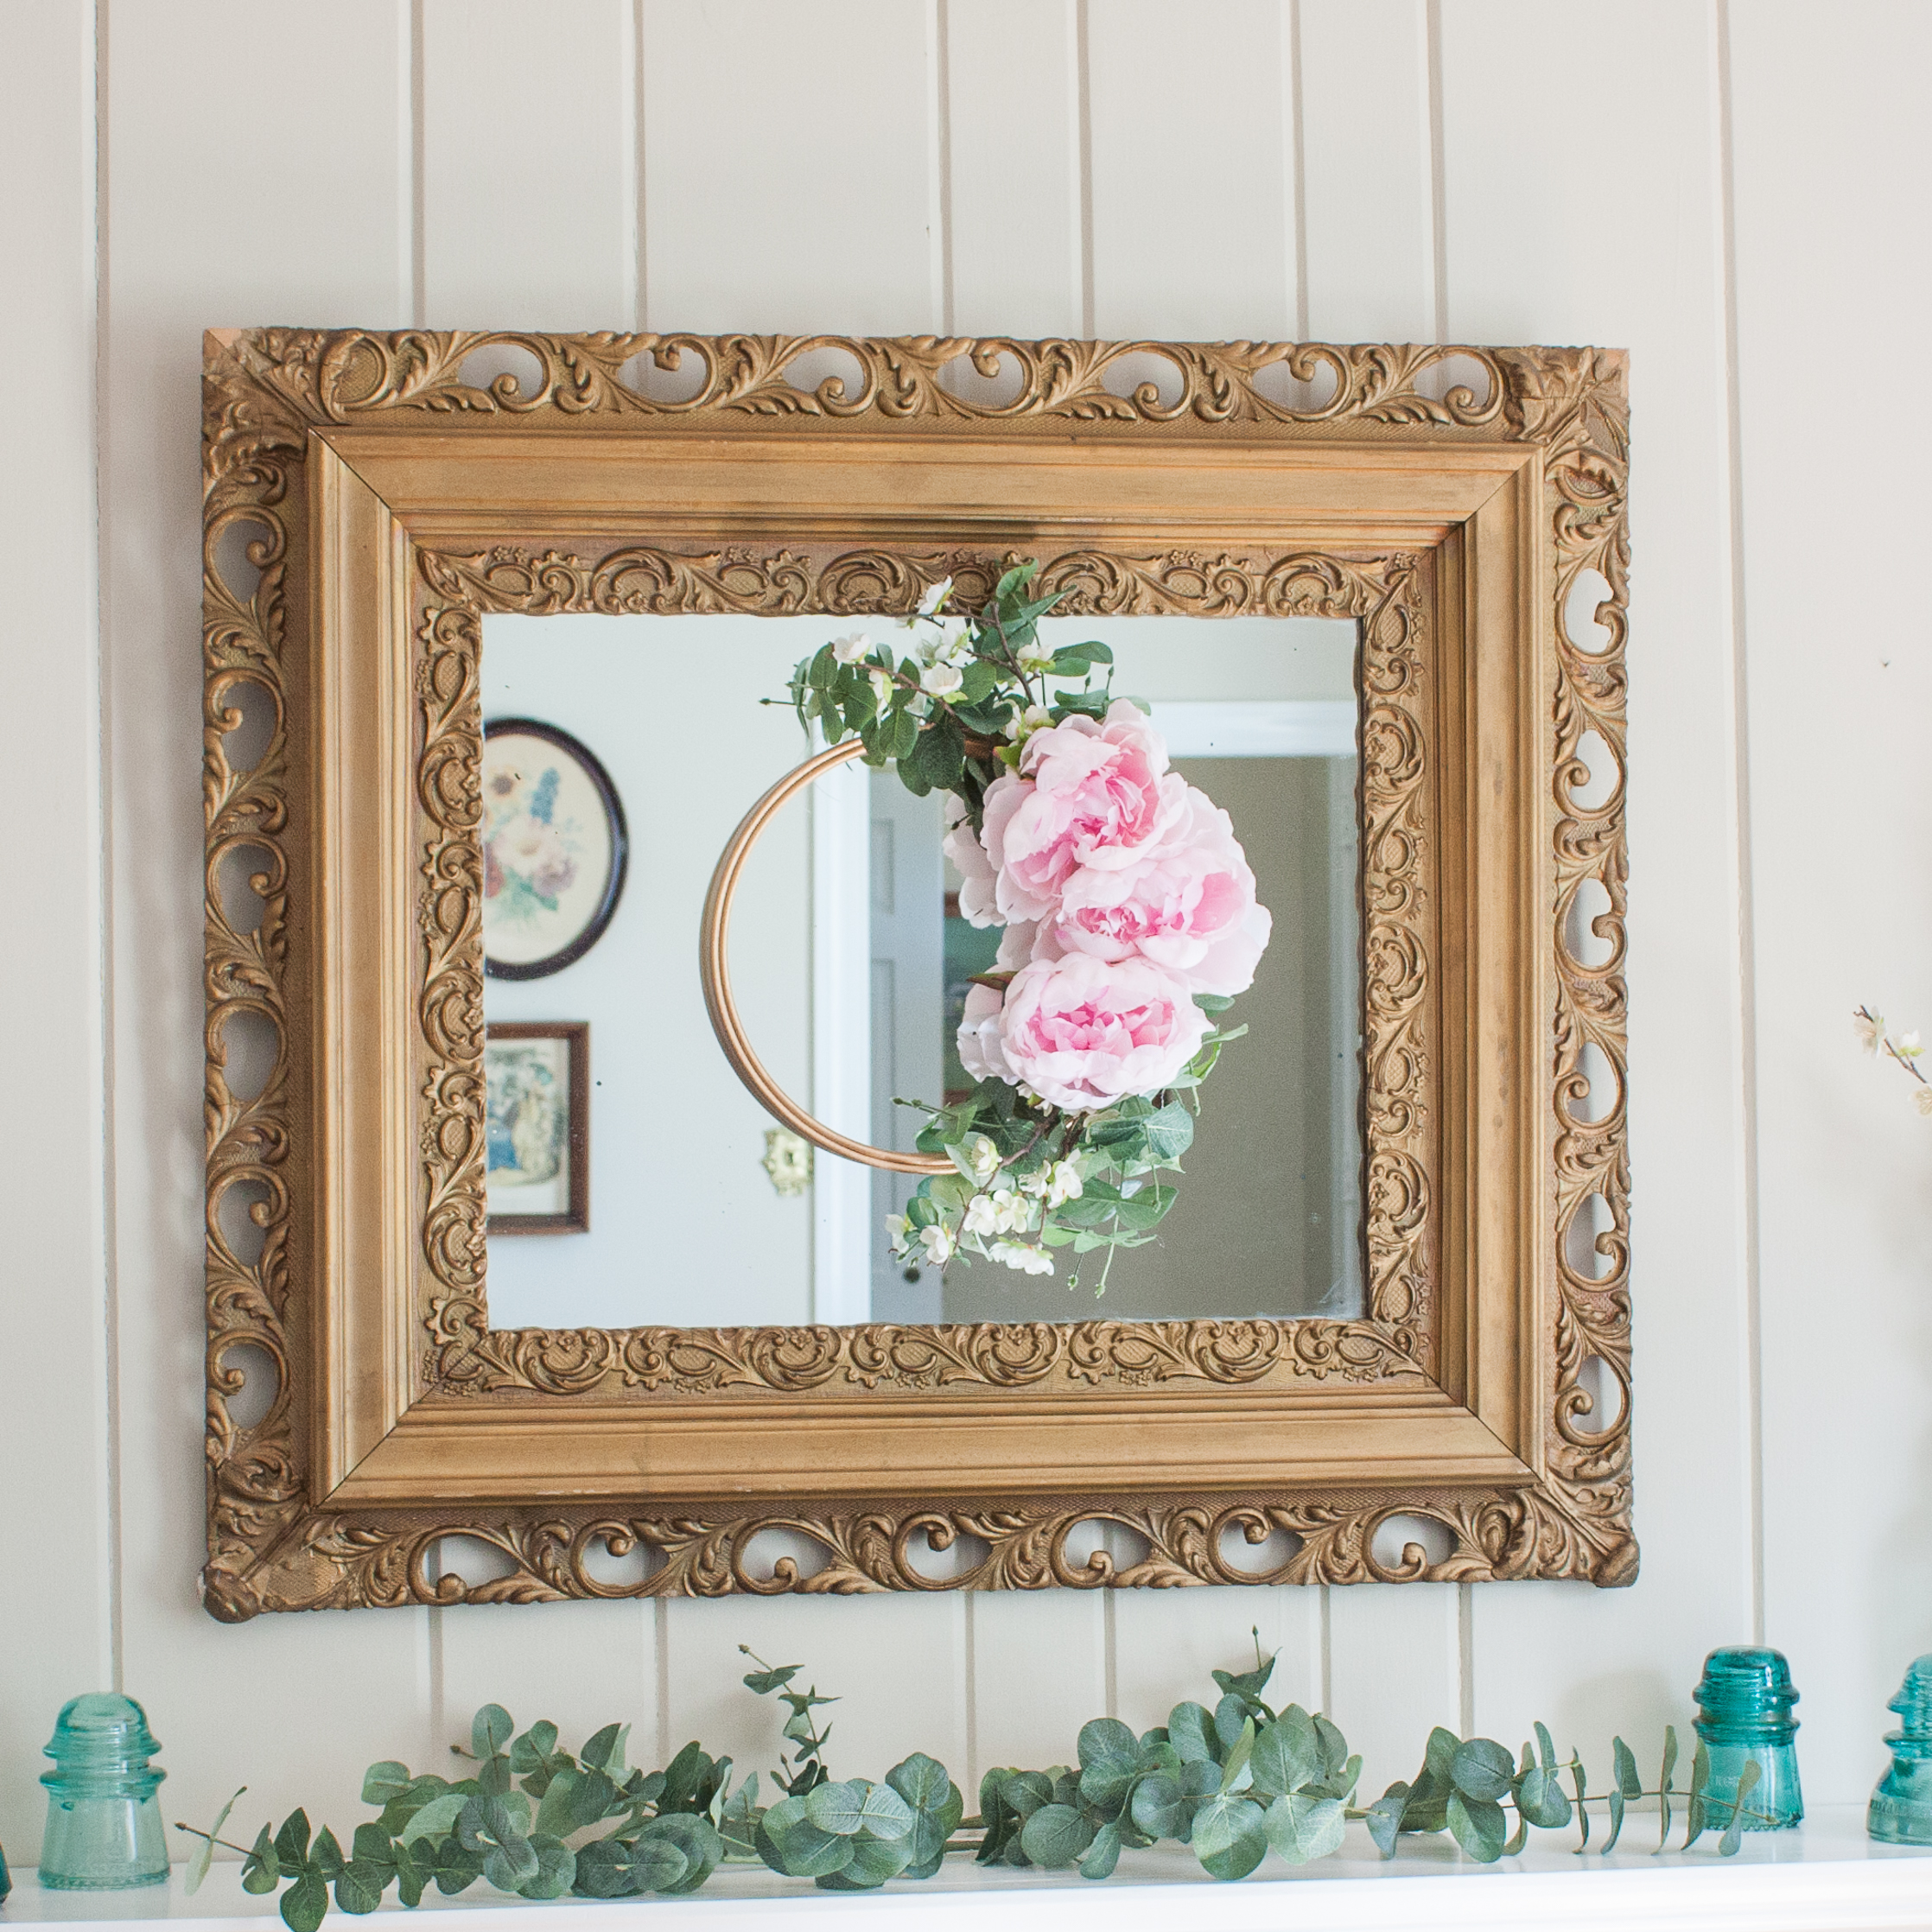 DIY Spring Embroidery Hoop Wreath and Mantel - #spring #springdecor #springmantel #wreath #springwreath